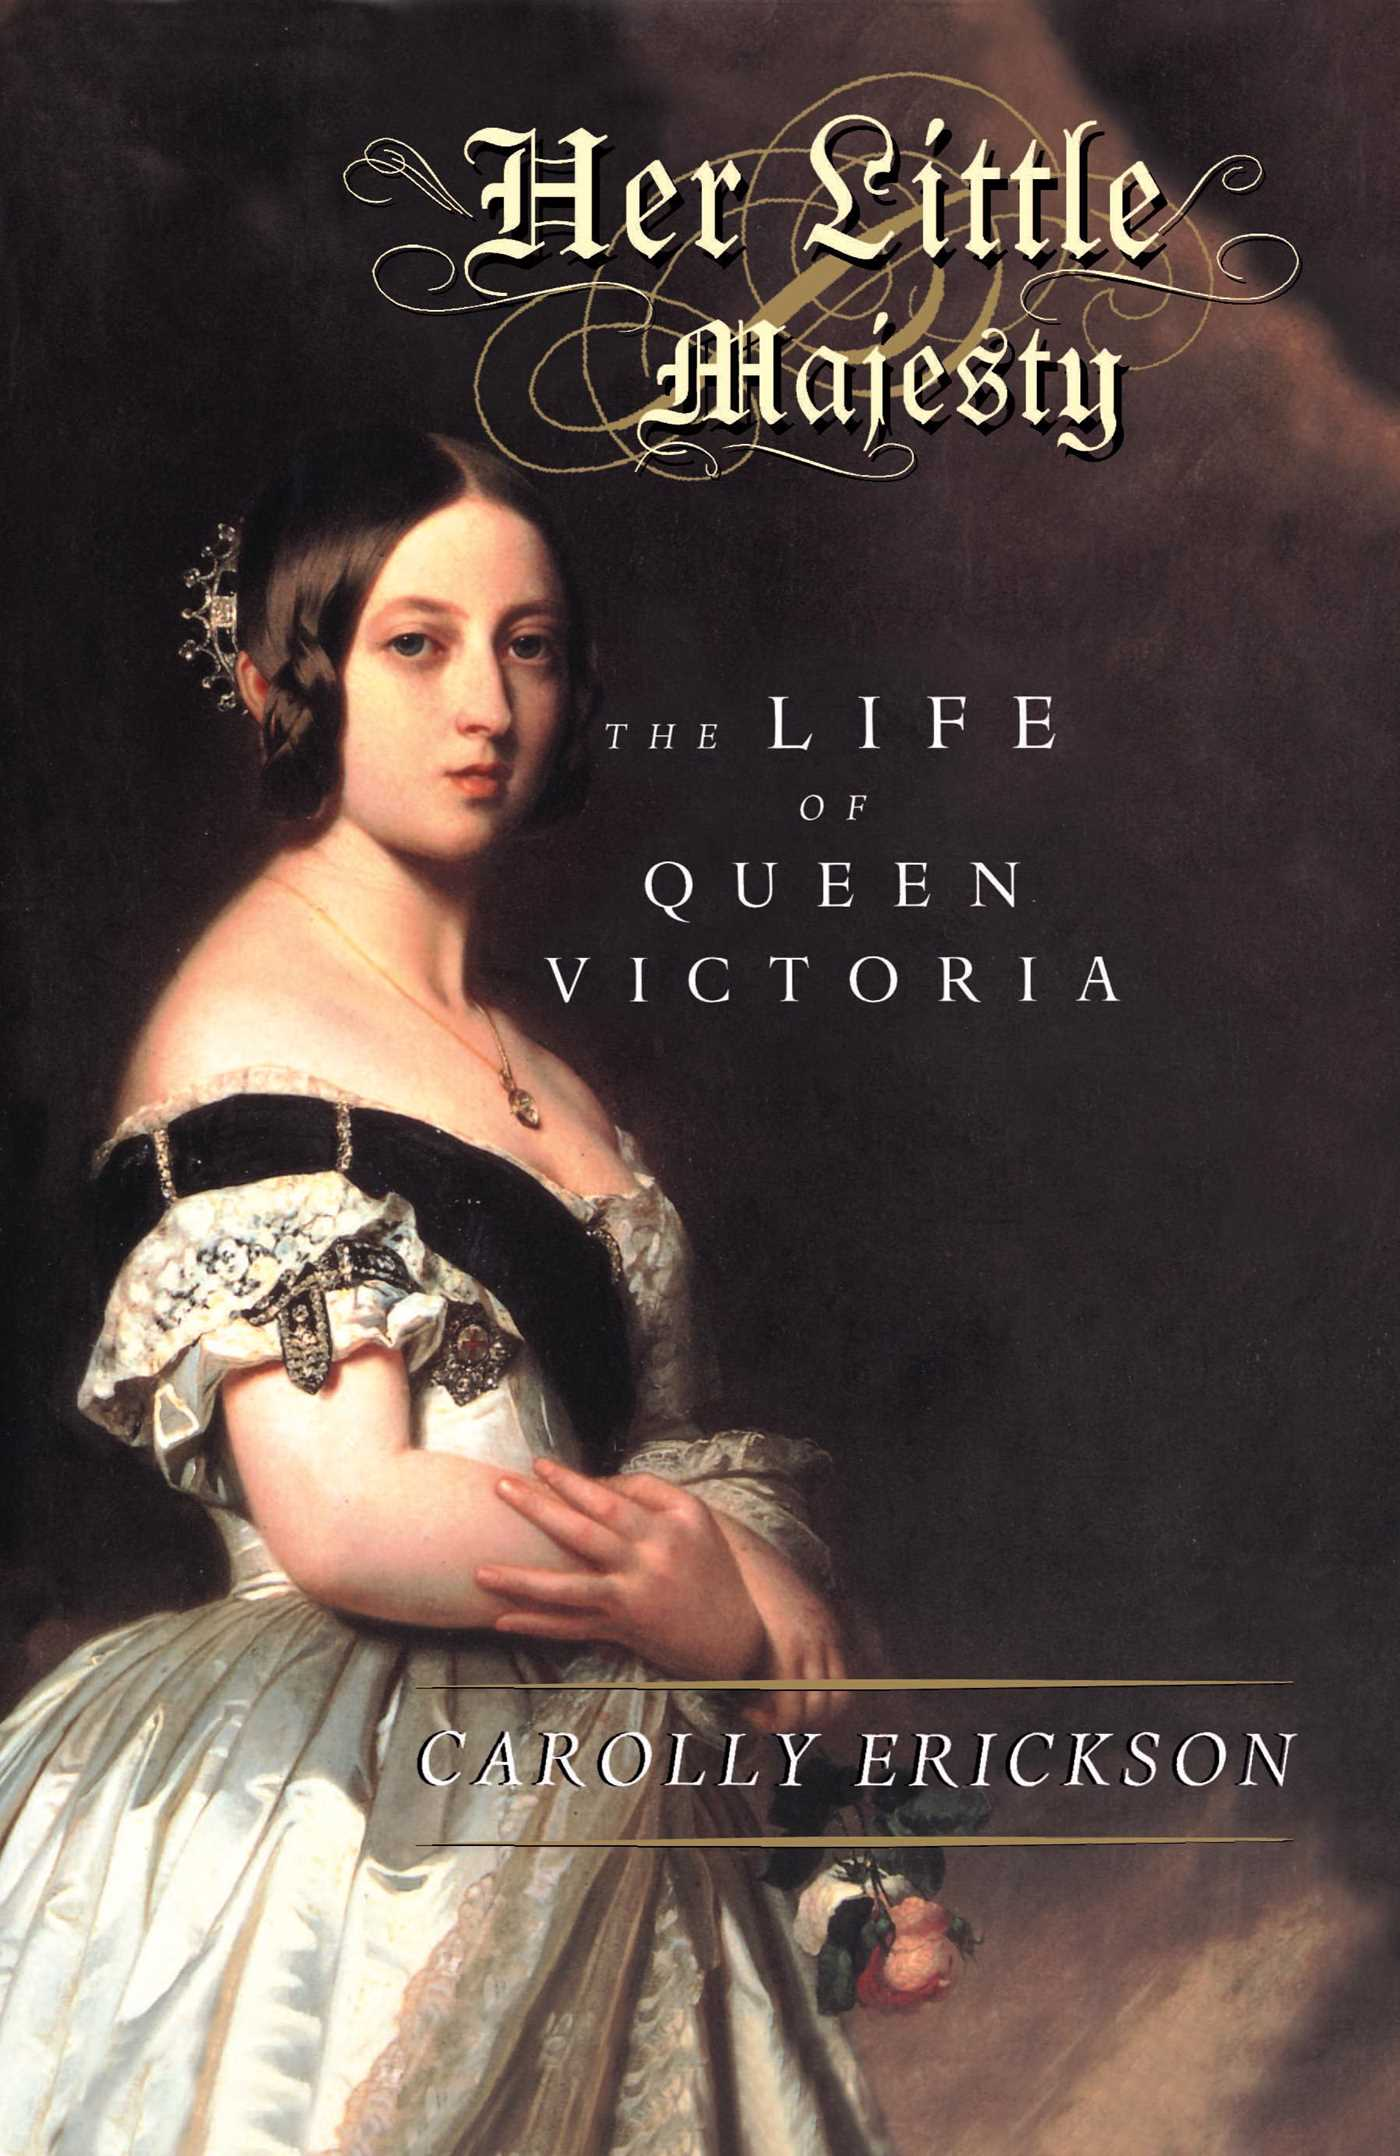 a review of carolly ericksons her little majesty the life of queen victoria Kirkus reviews tend to be brief, only two or three paragraphs long the emphasis is on describing the writing style and quality, with a short plot synopsis included reviews end with a summary of the reviewer's thoughts and links to purchase options.